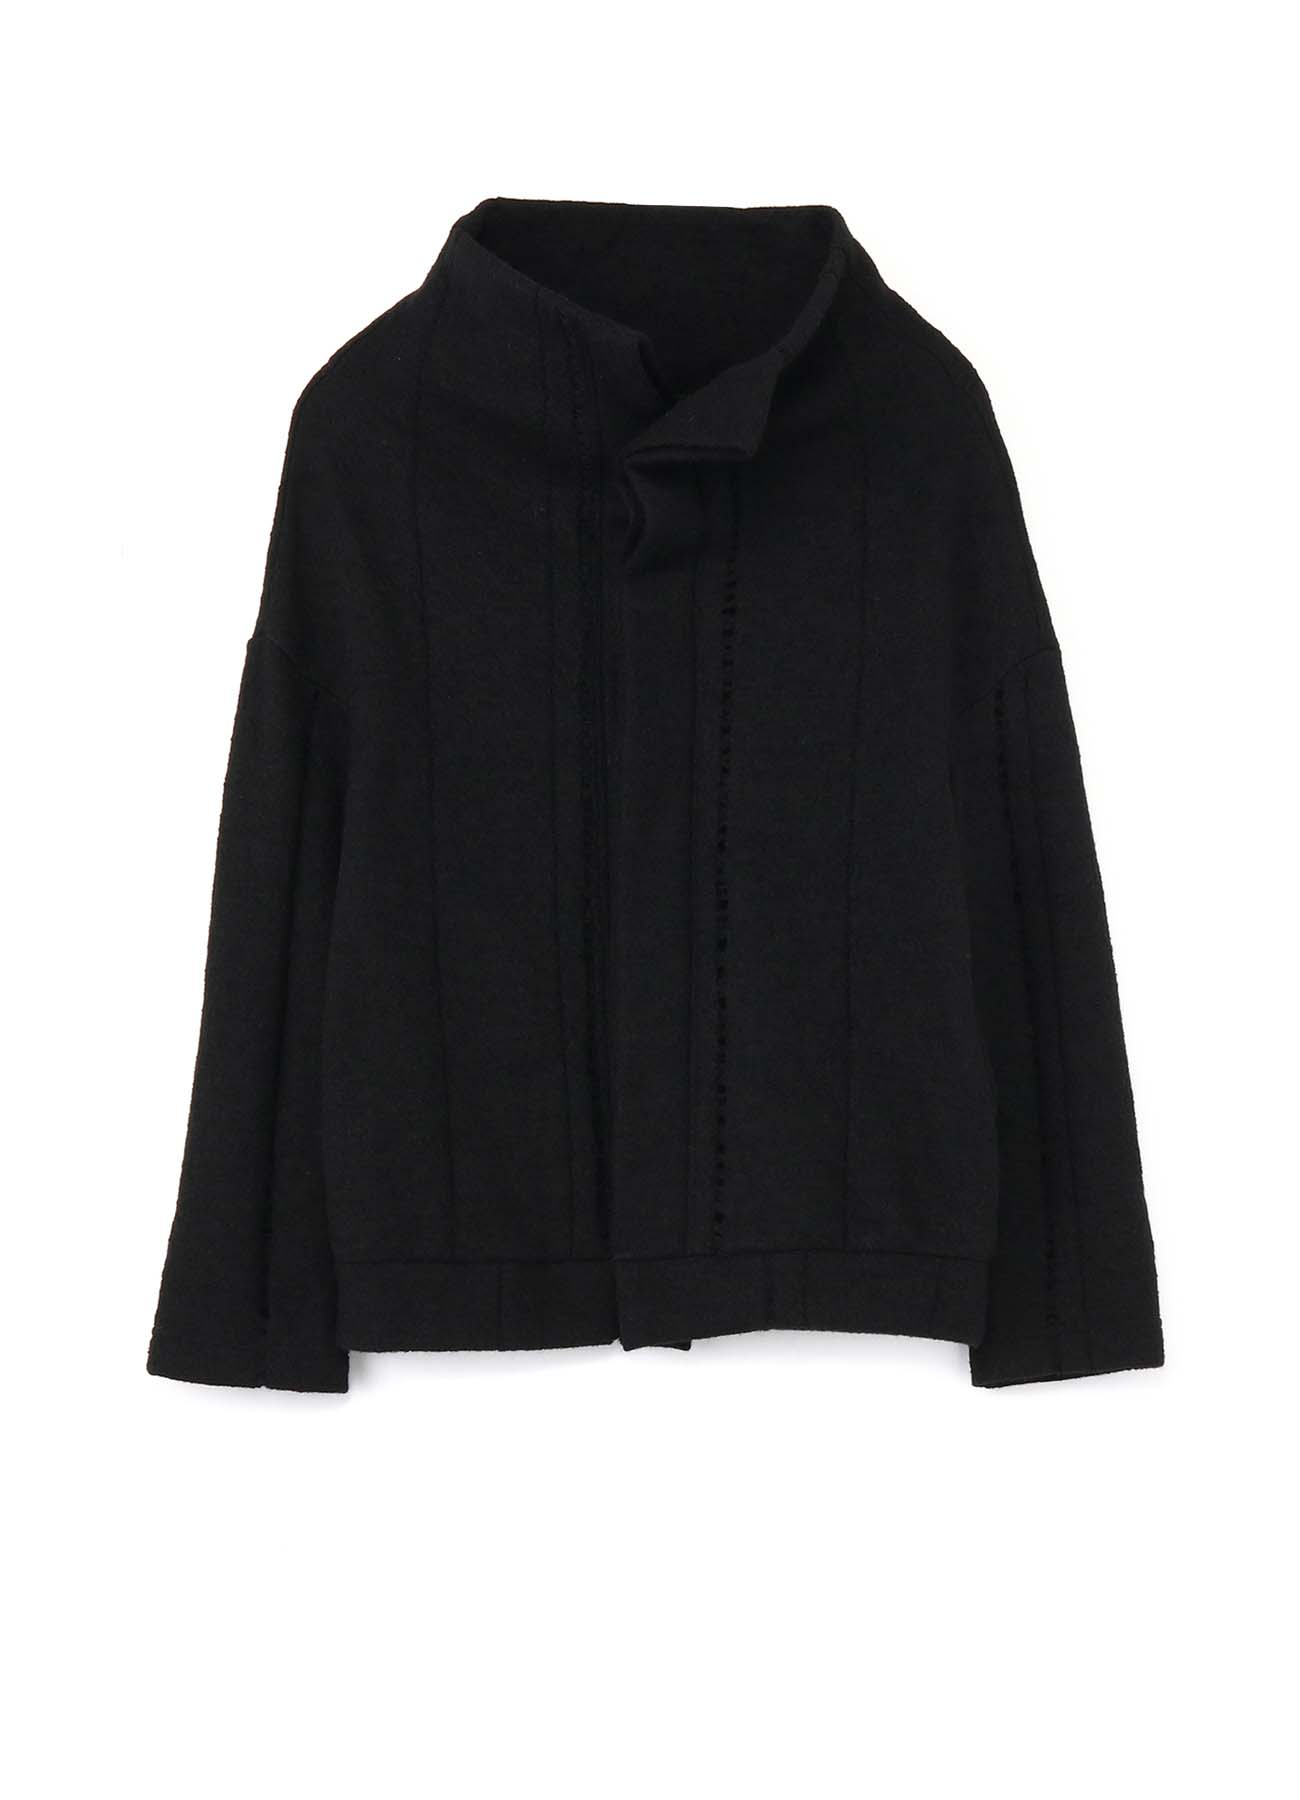 PARTIAL DROP STITCH SHRINKAGE OFF NECK FLY CARDIGAN